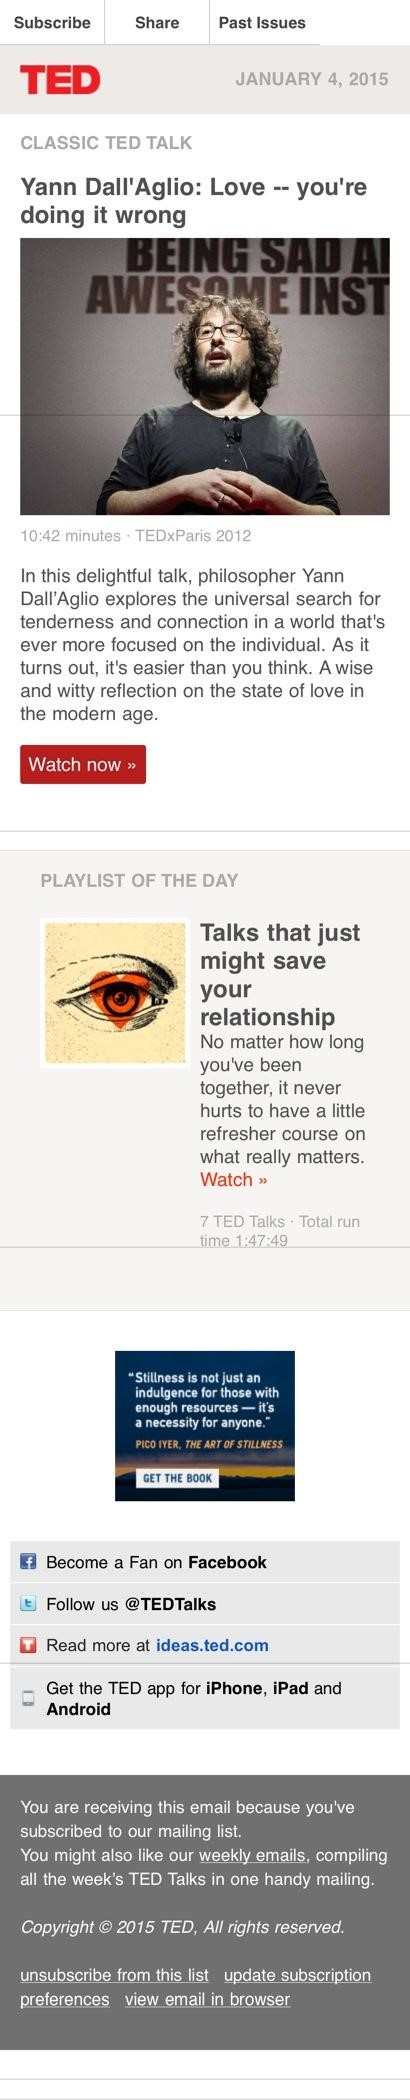 ted-talks-image 11